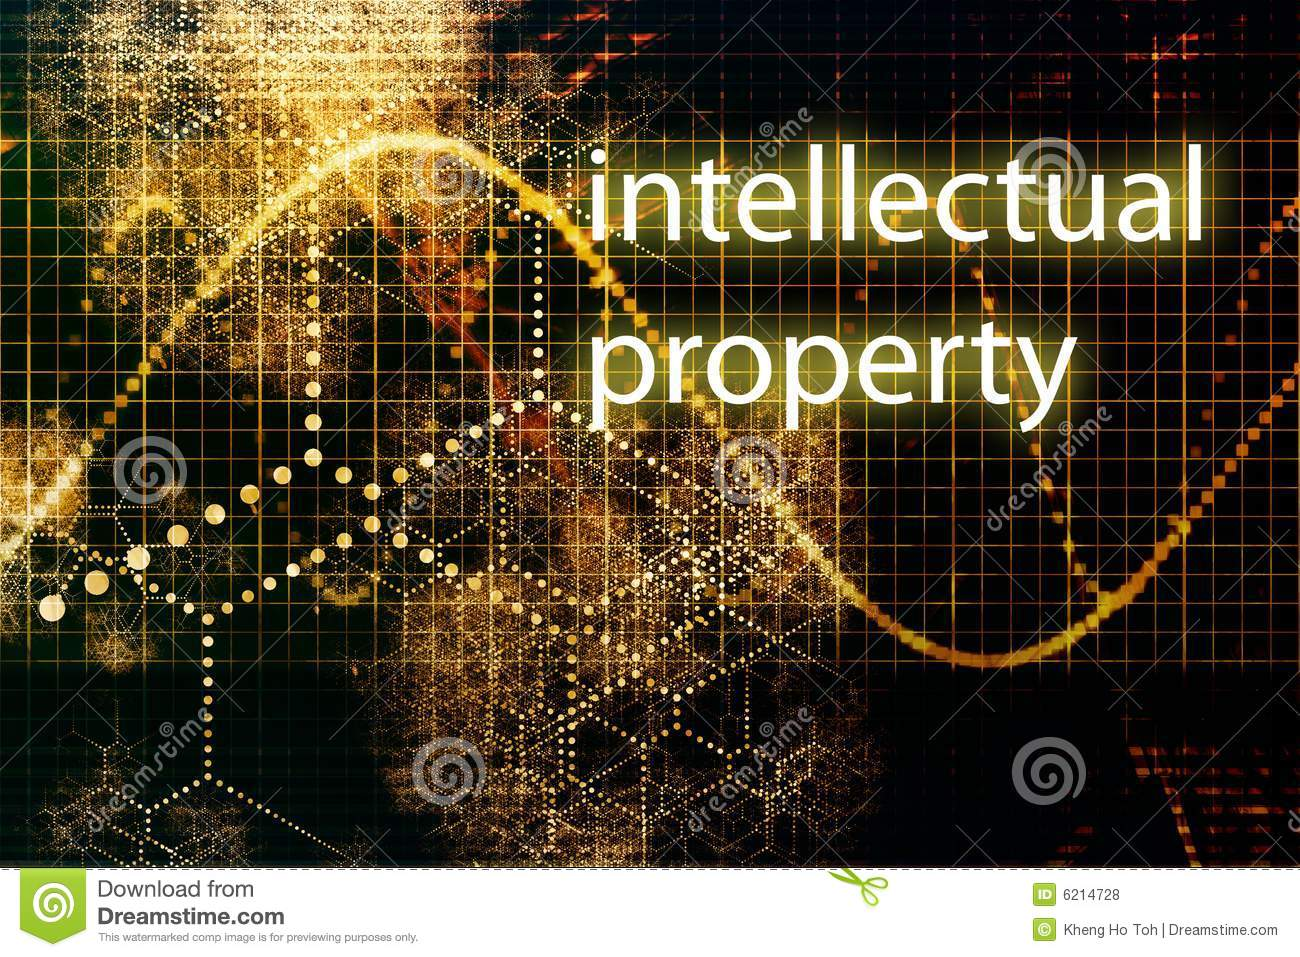 Intellectual Property Royalty Free Stock Photos - Image: 6214728